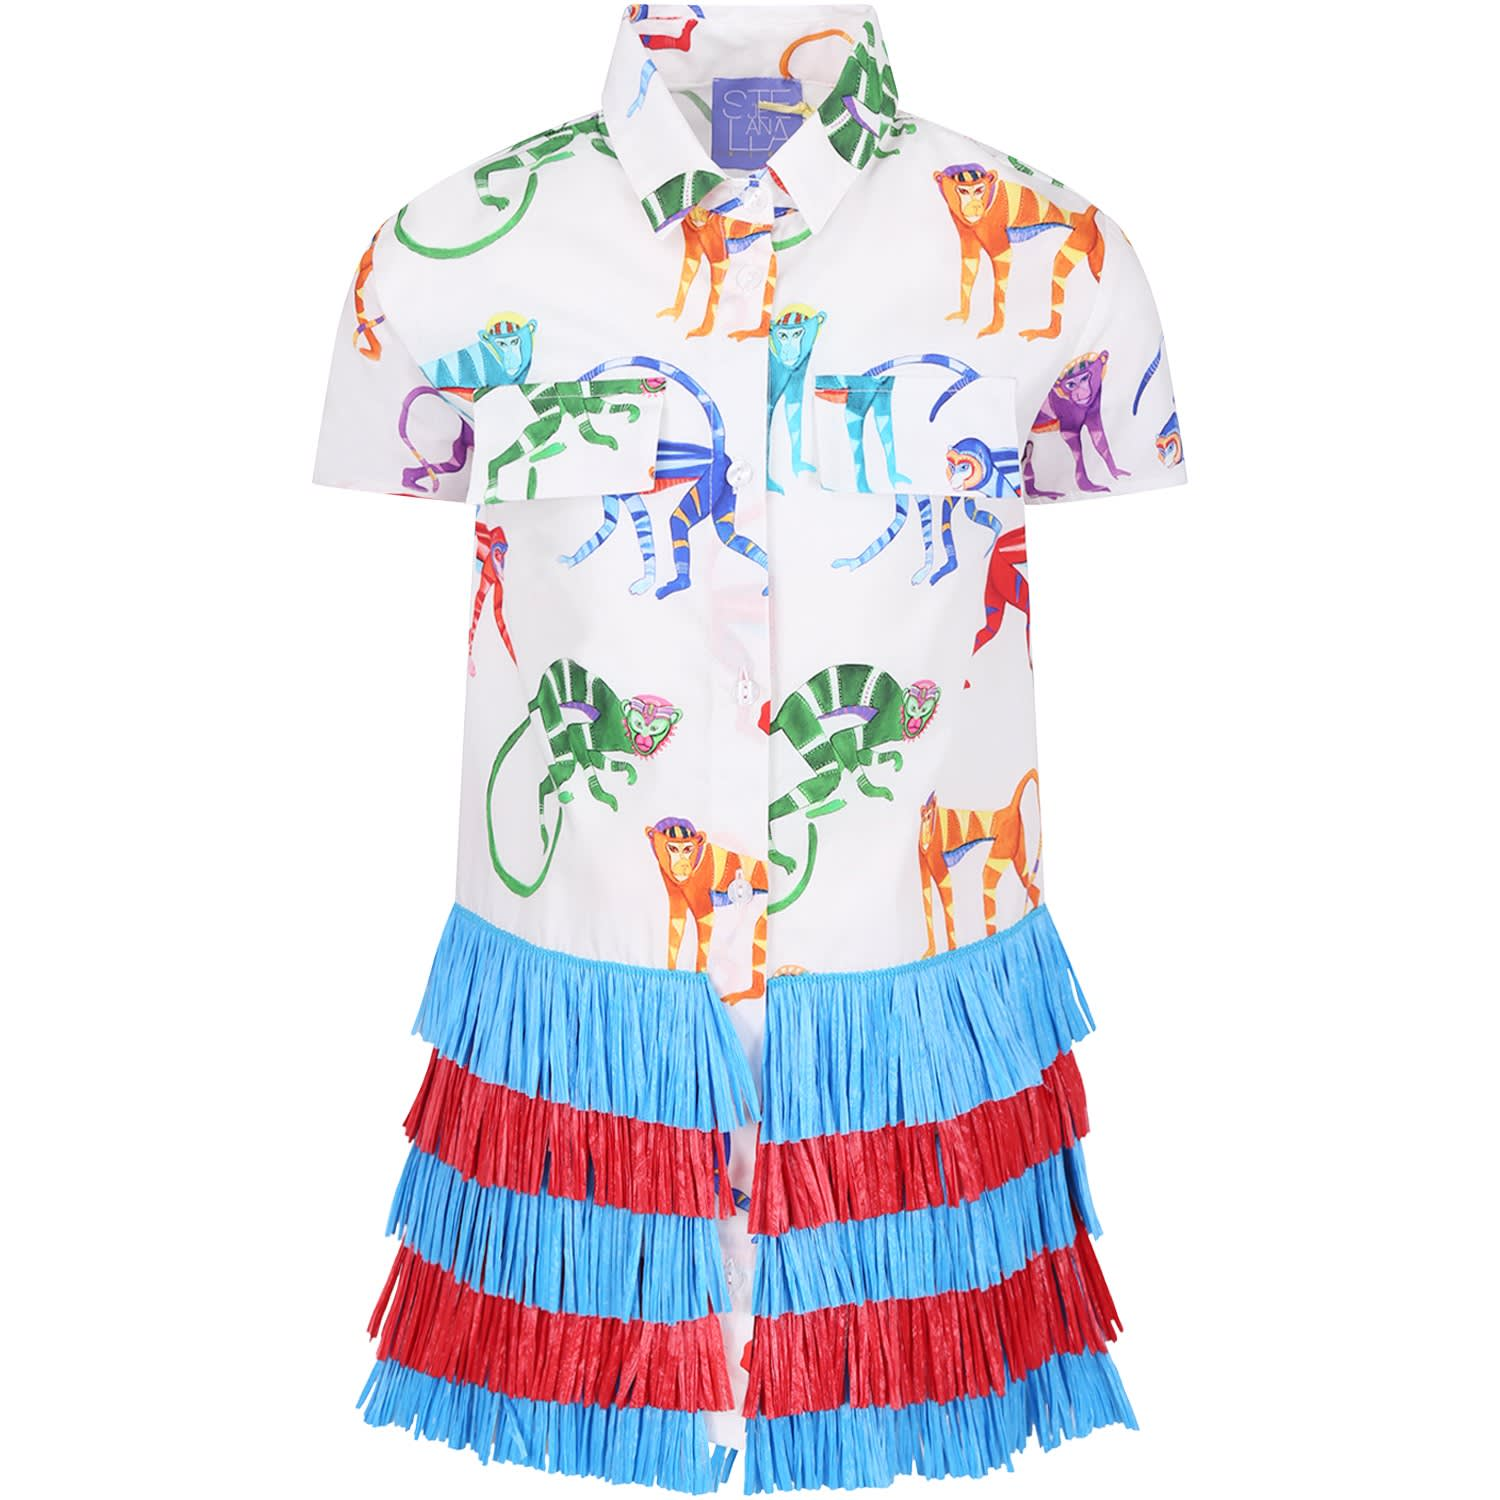 Stella Jean White Girl Dress With Colorful Monkeys